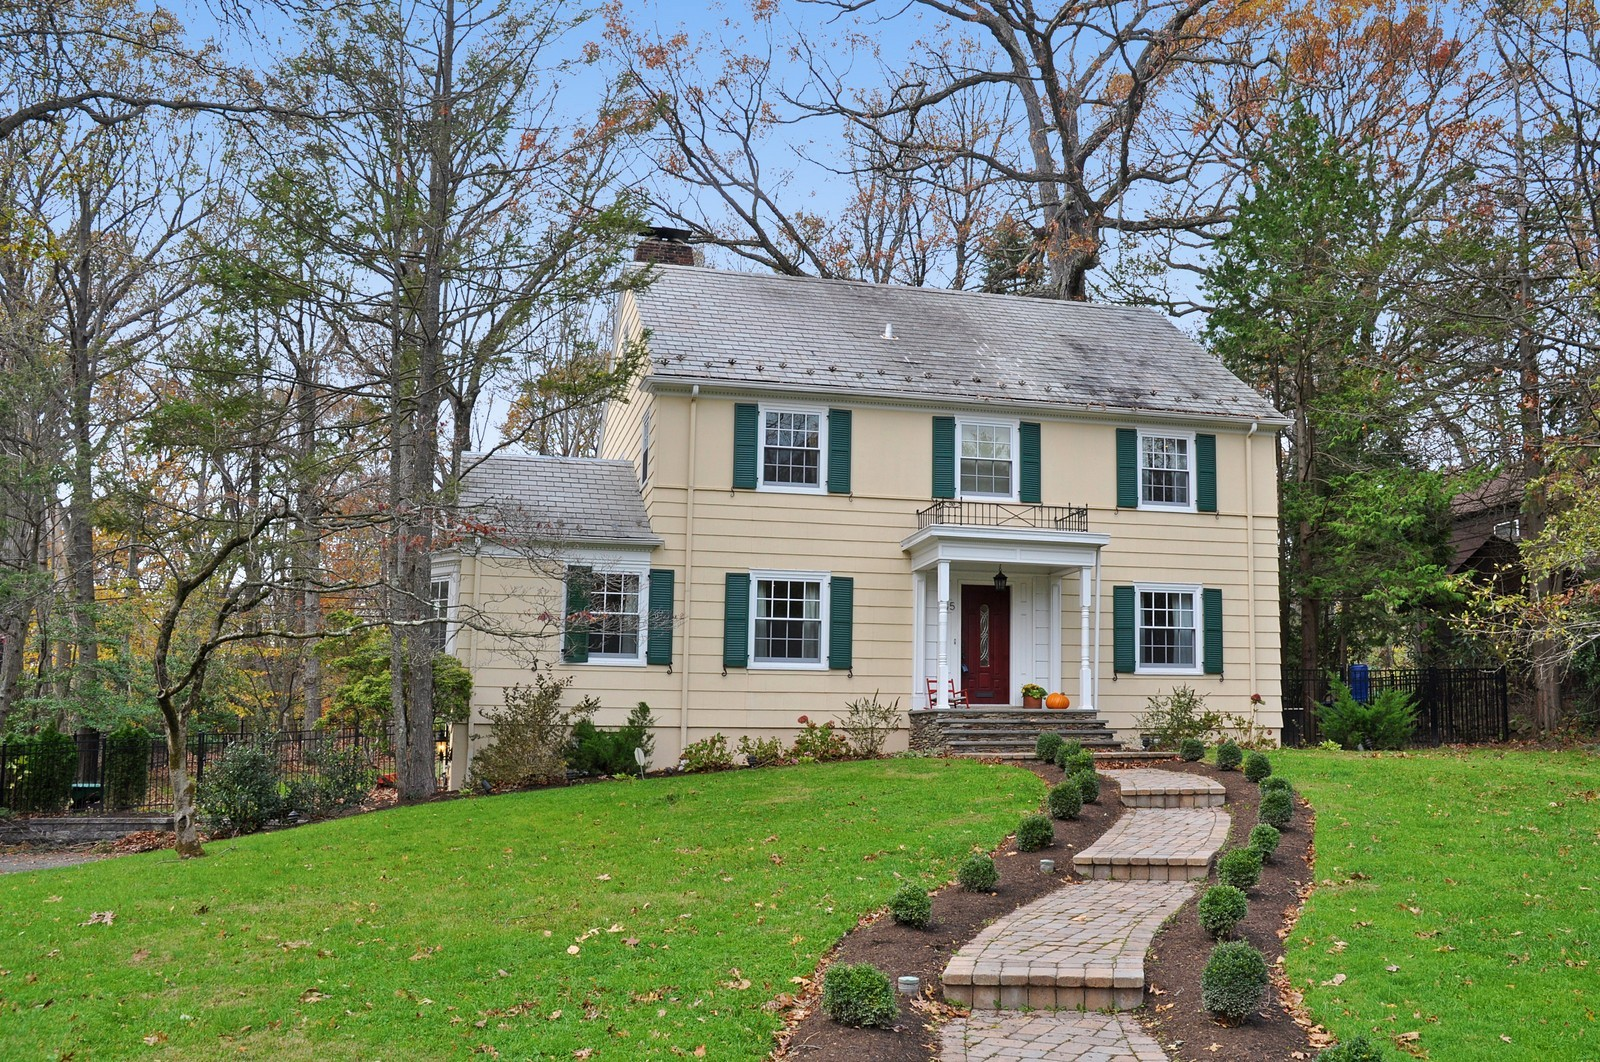 Real Estate Photography - 45 Glenview Road, South Orange, NJ, 07079 - Front View